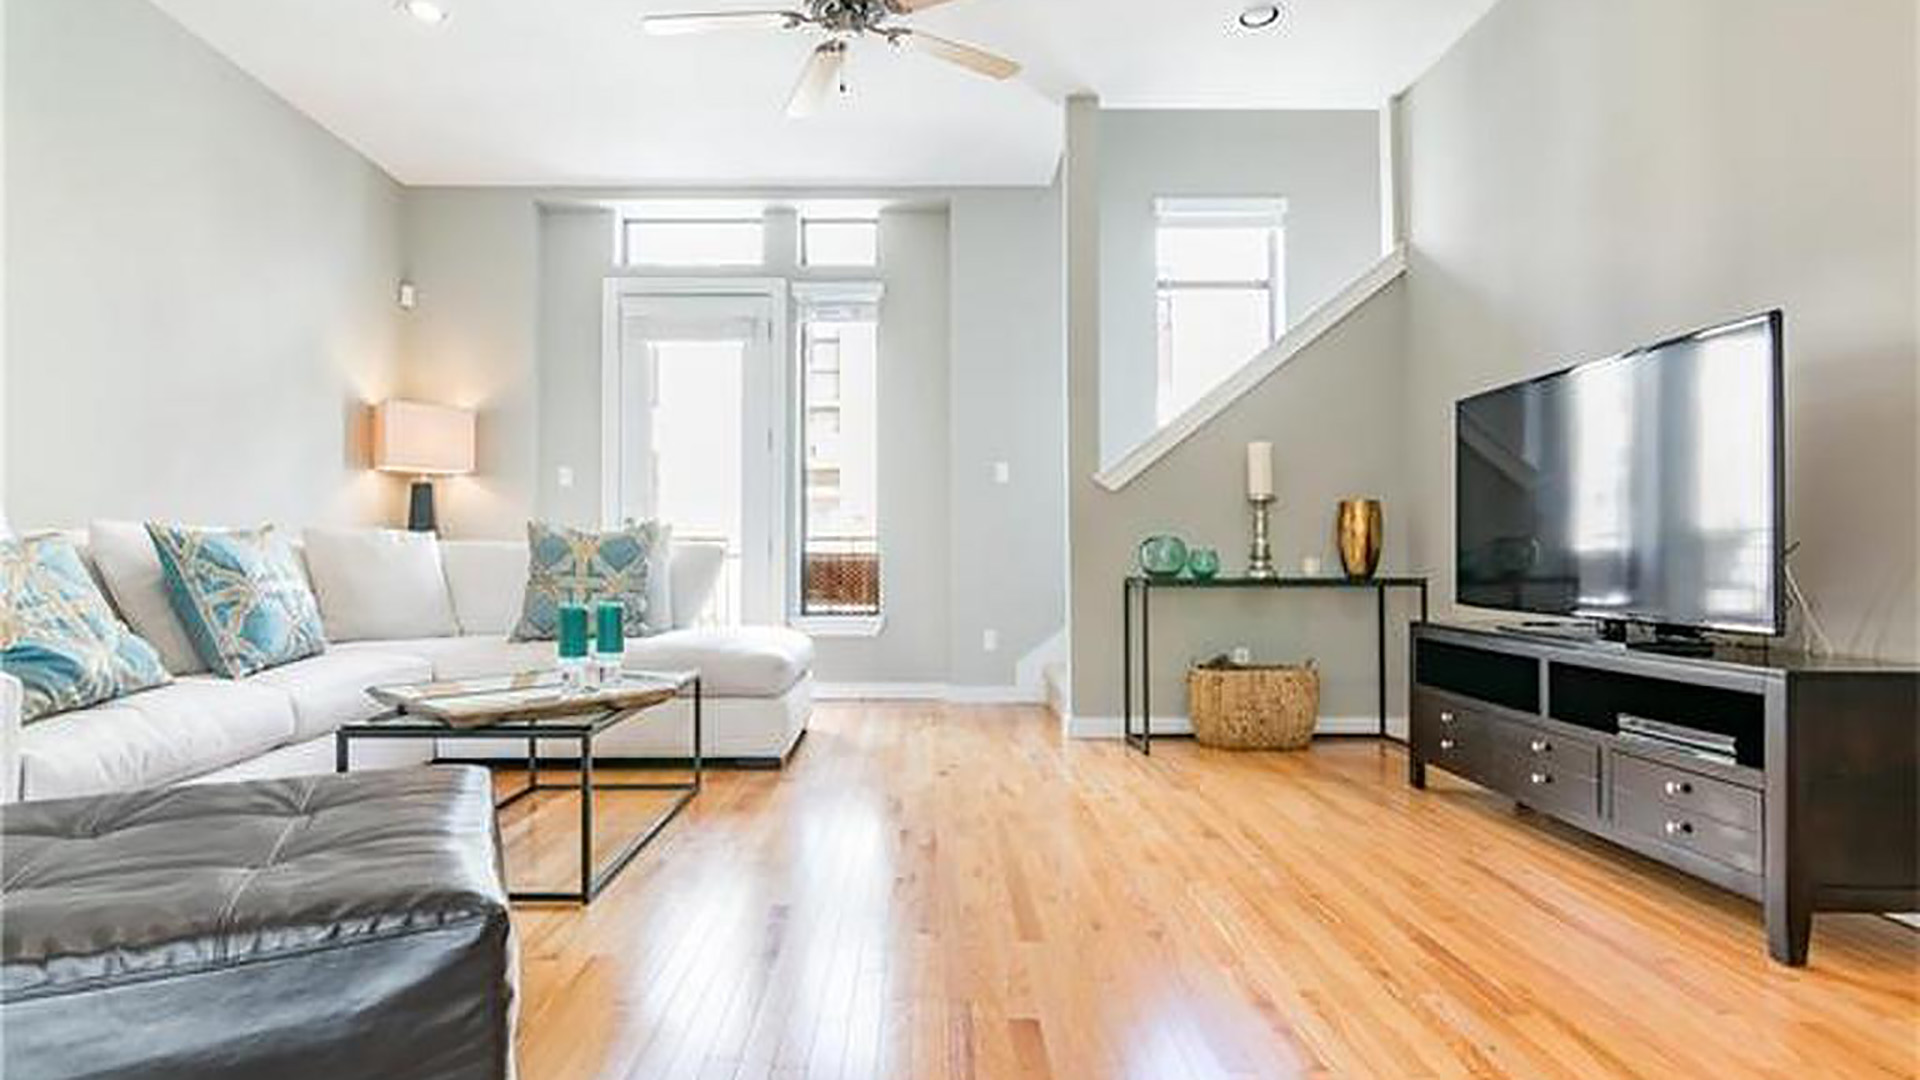 Image of South Austin Condo Under $300k